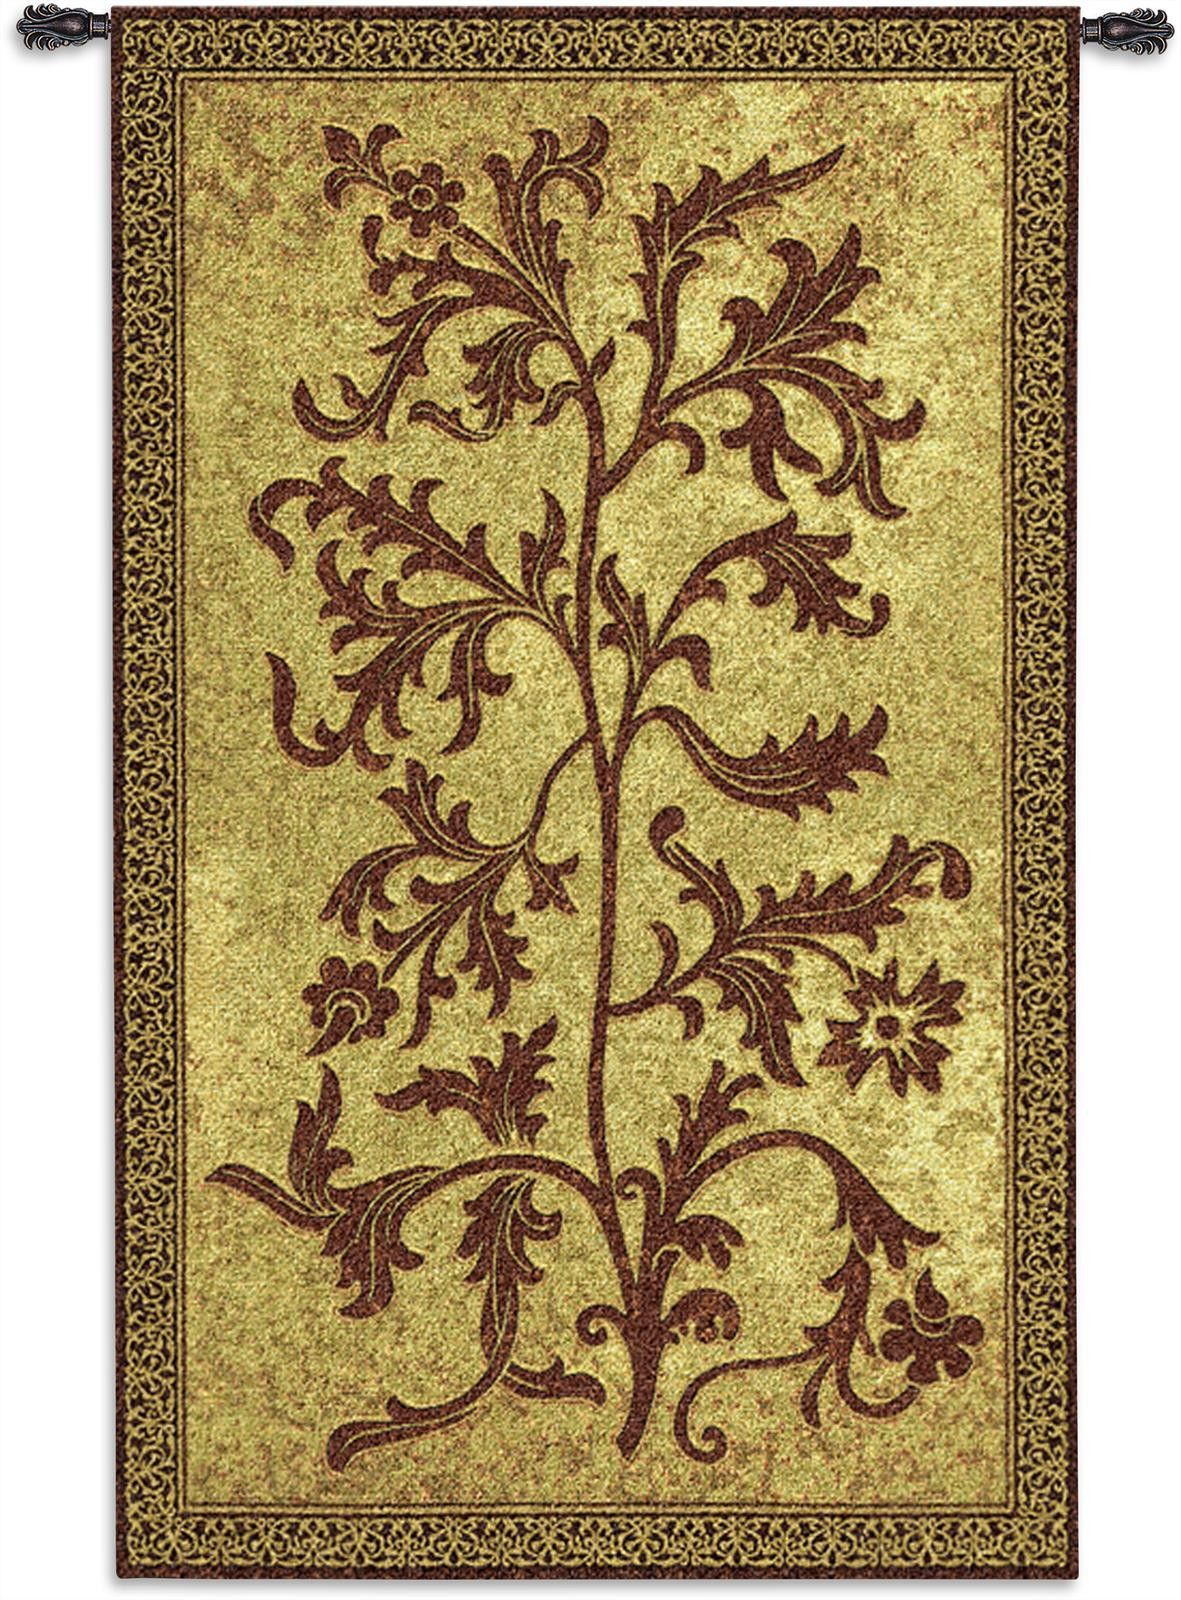 Acanthus Vine Large Wall Tapestry | Wall tapestries, Tapestry and ...